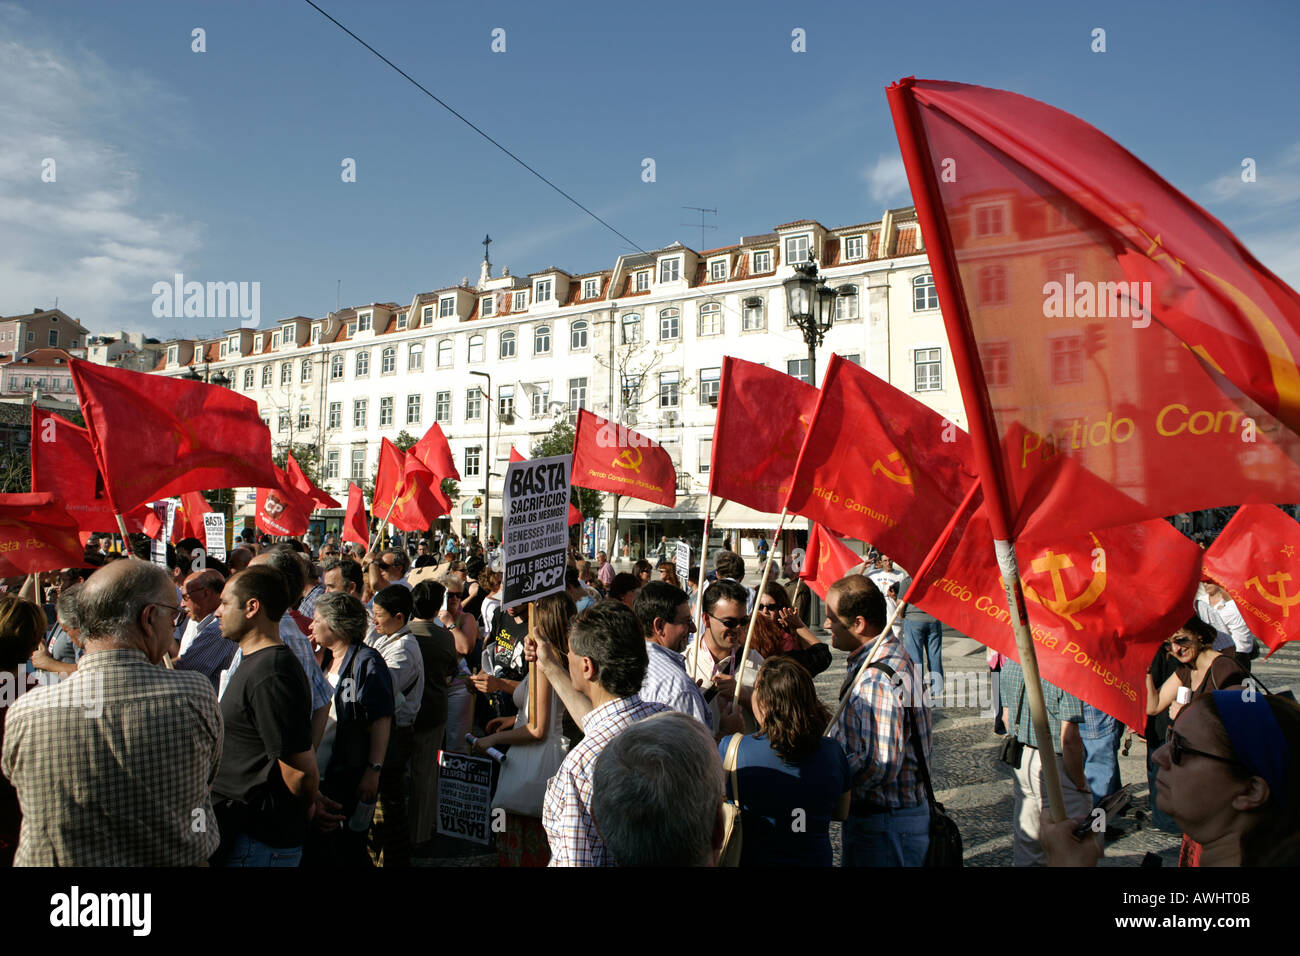 The Communist Part of Portugal stages a rally with their red flags and marches into Rossio Square for speeches - Stock Image